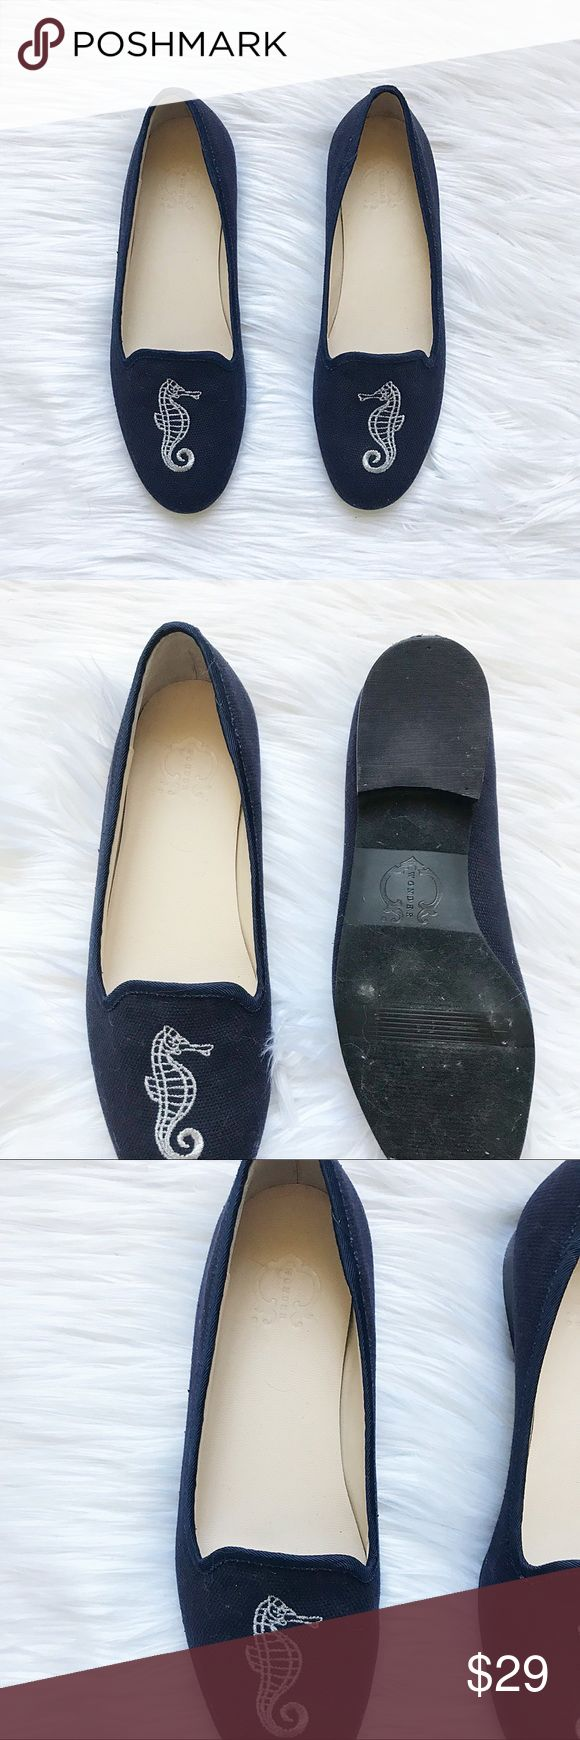 C Wonder Seahorse Navy Flats * C Wonder Seahorse Flats * Textile Upper * Man Made Sole * Fabric Texture  Size: 7 Color: Navy & White Condition: Excellent Used Condition  No stains, rips, tears   Pet/Smoke free home. Offers welcomed ✨ C Wonder Shoes Flats & Loafers